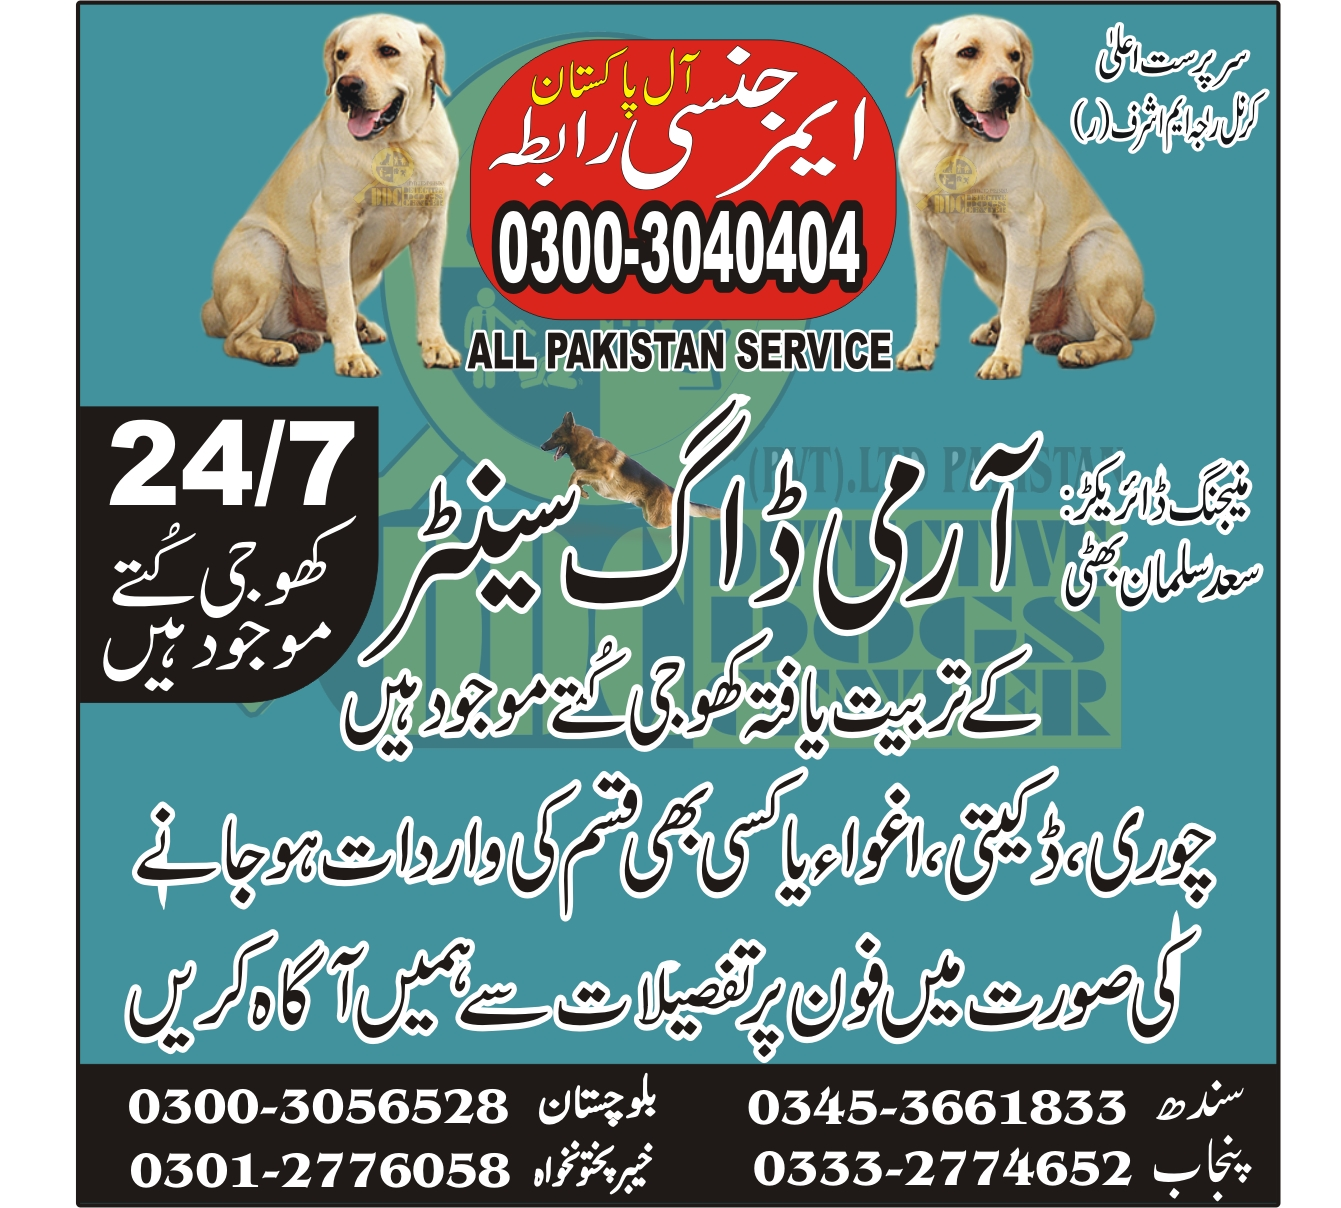 Pakistan Army And Army Dog Center News